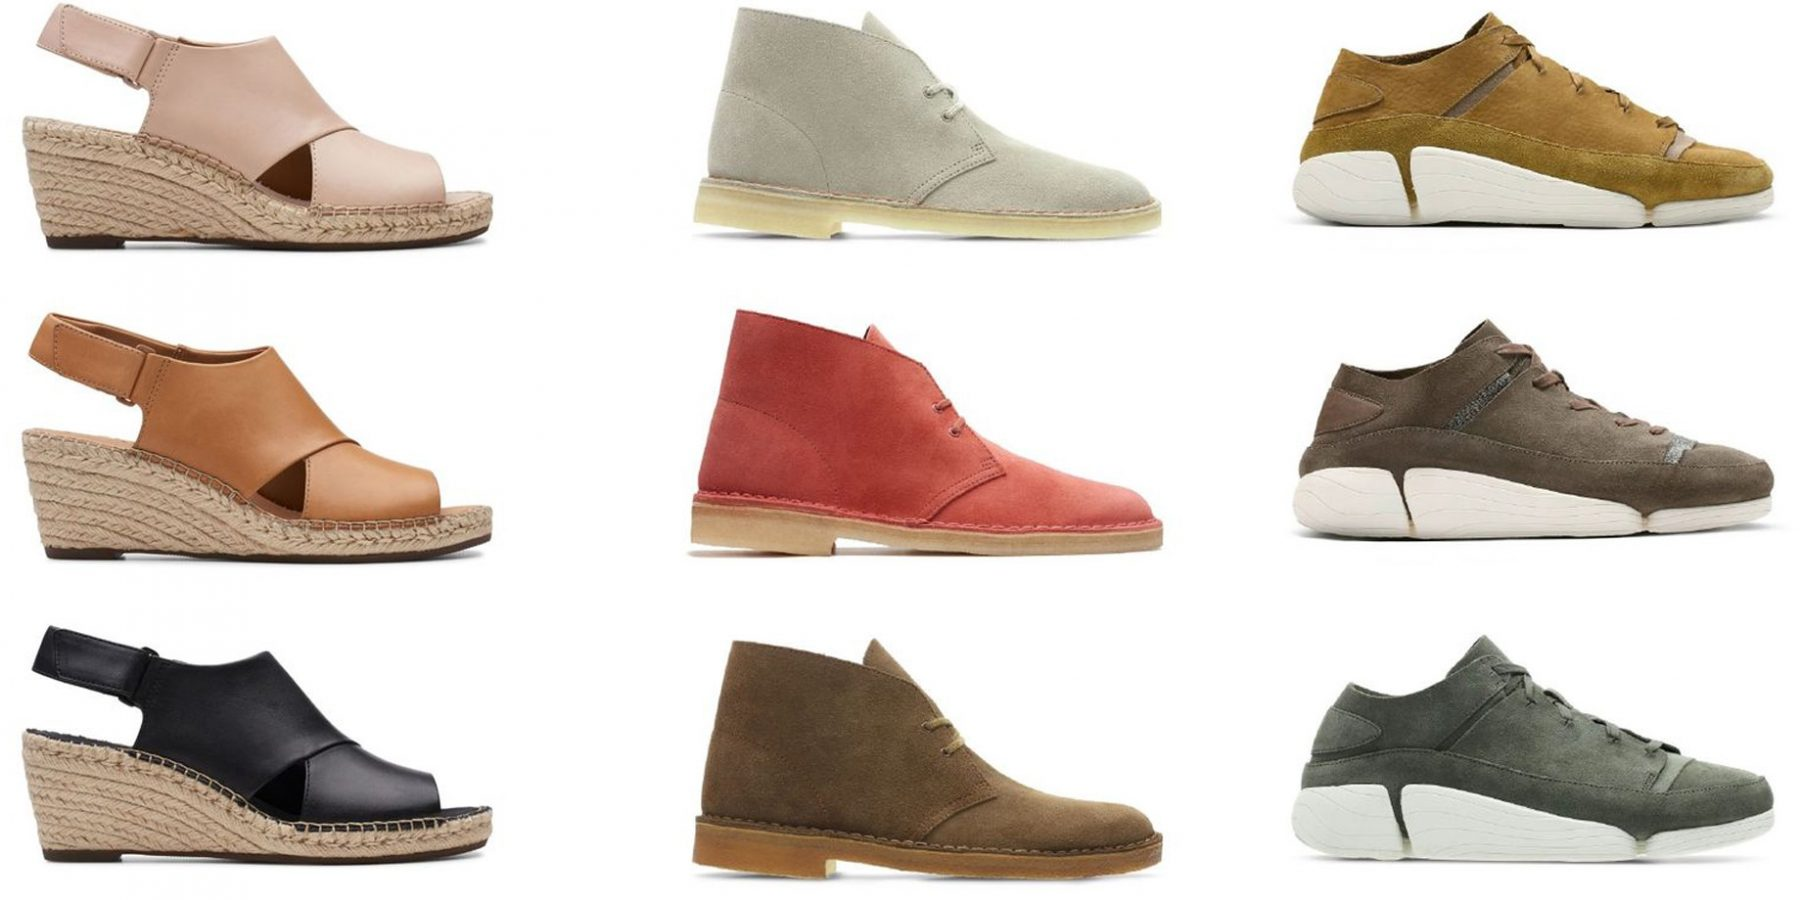 The Clarks Big Spring Sale cuts 20% off